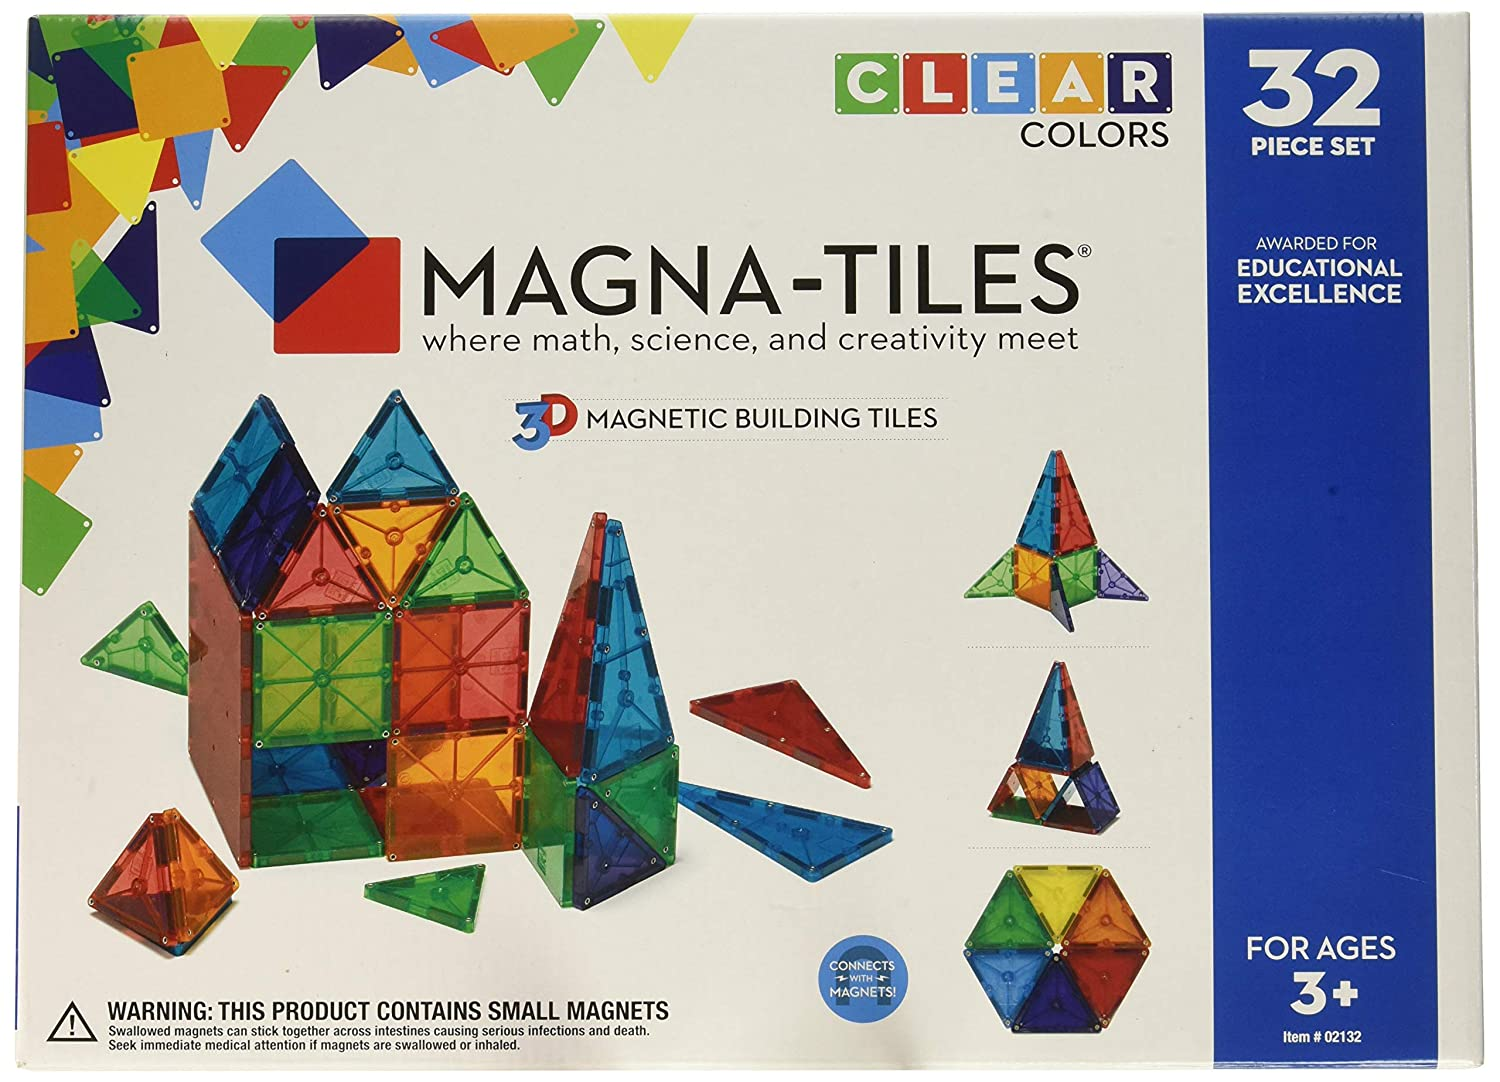 Amazon.com: Magna-Tiles 32-Piece Clear Colors Set – The Original,  Award-Winning Magnetic Building Tiles – Creativity and Educational – STEM  Approved: Toys & ...